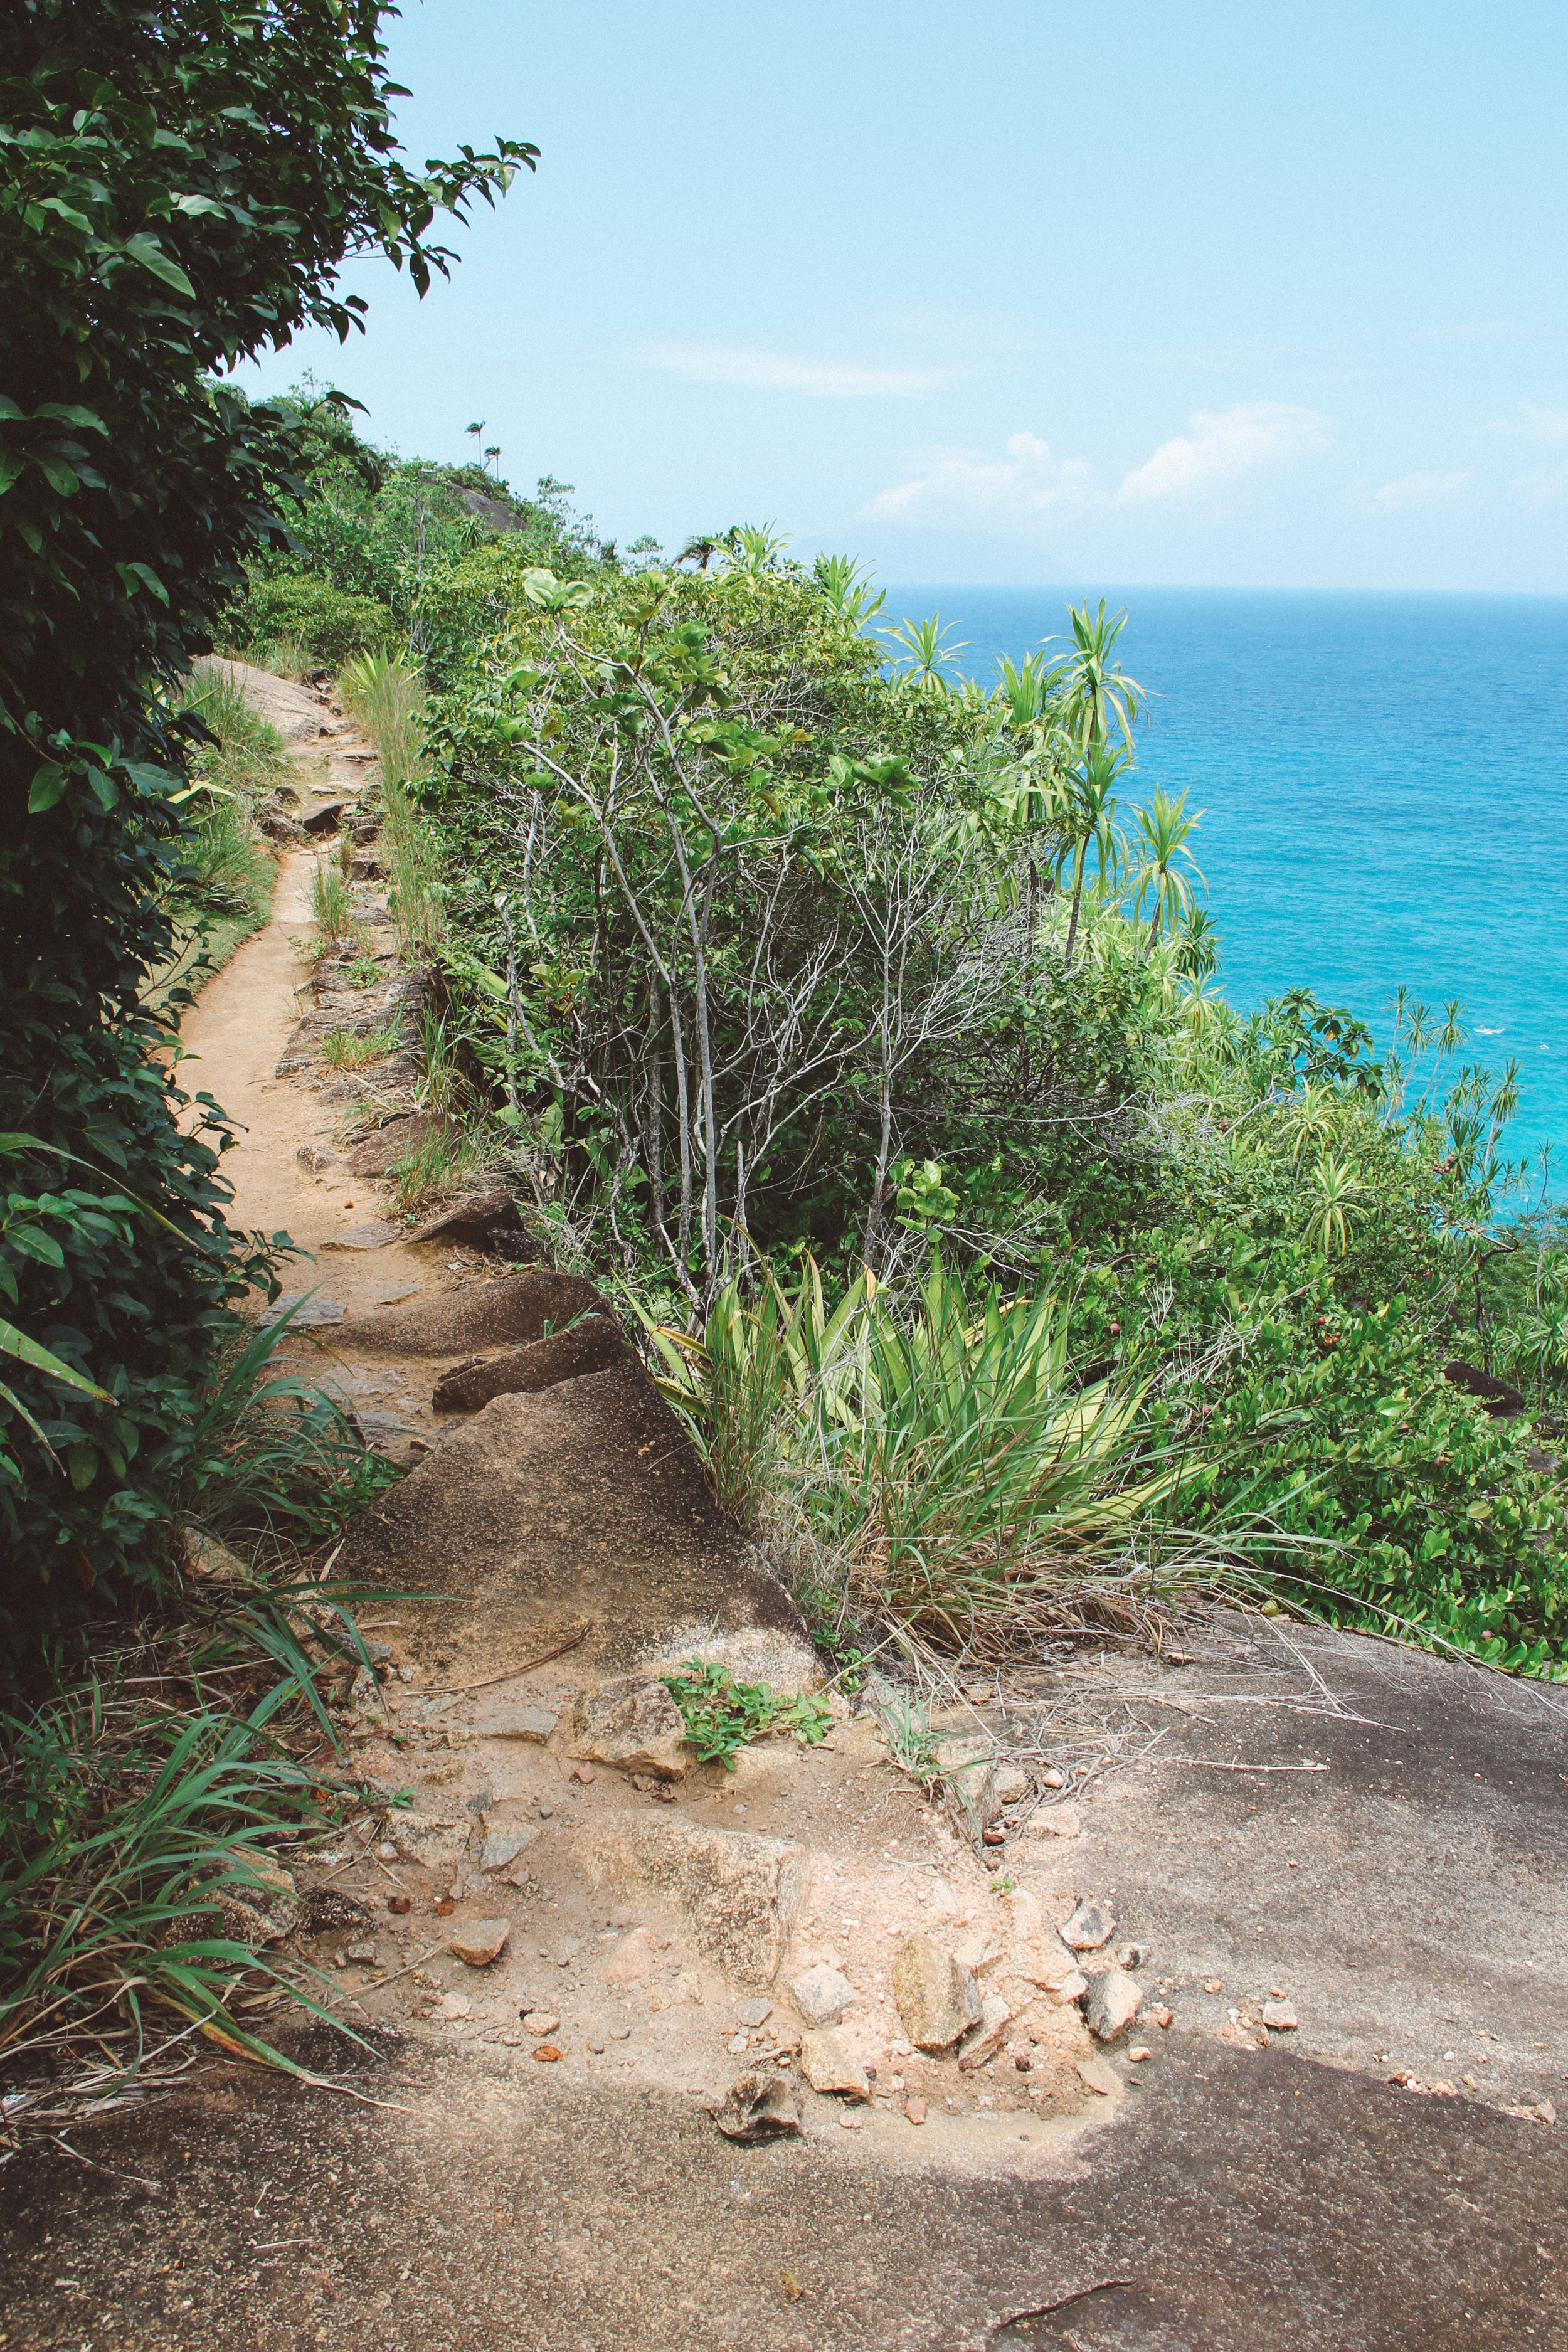 The beginning of Anse Major trail follows the coast